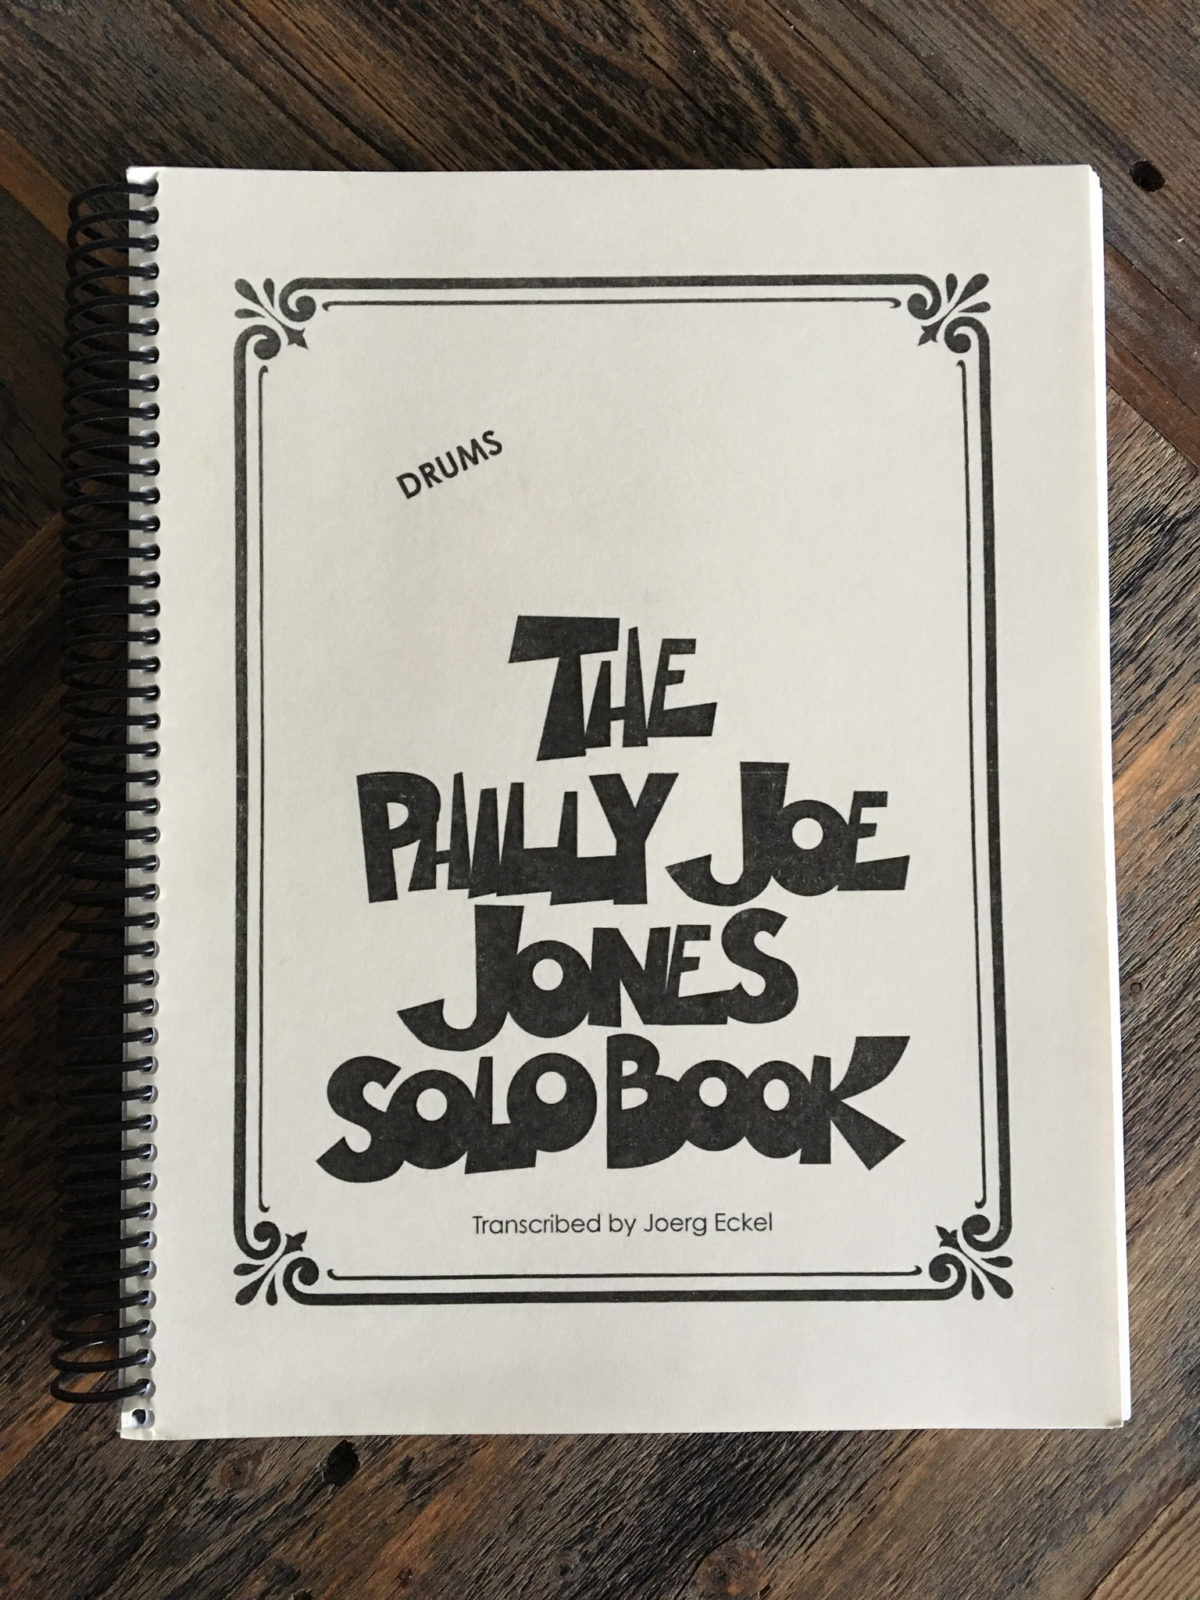 Philly Joe Jones Solo Book